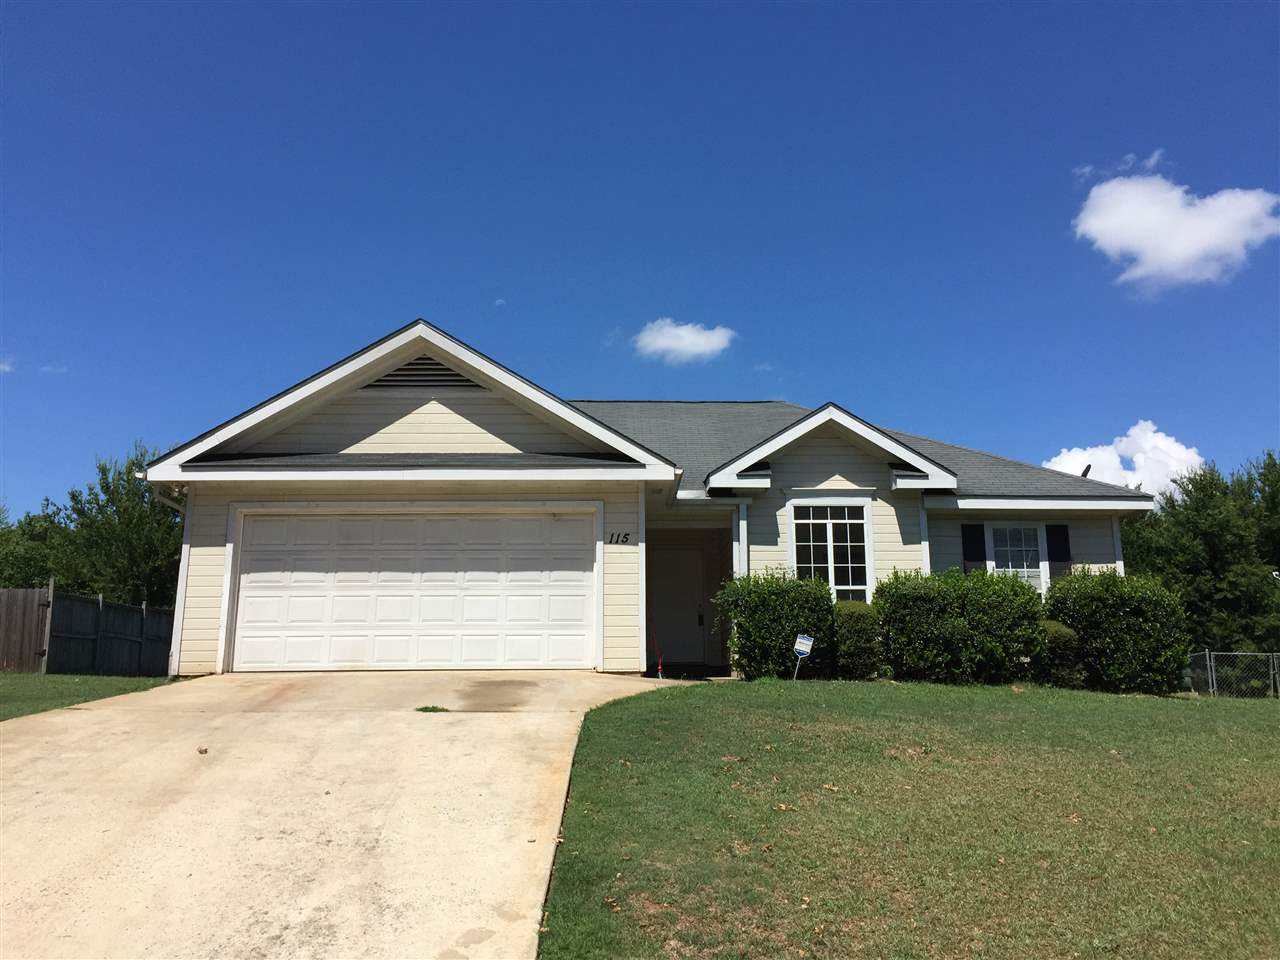 115 RIDGE BEND DRIVE, WARNER ROBINS, GA 31093